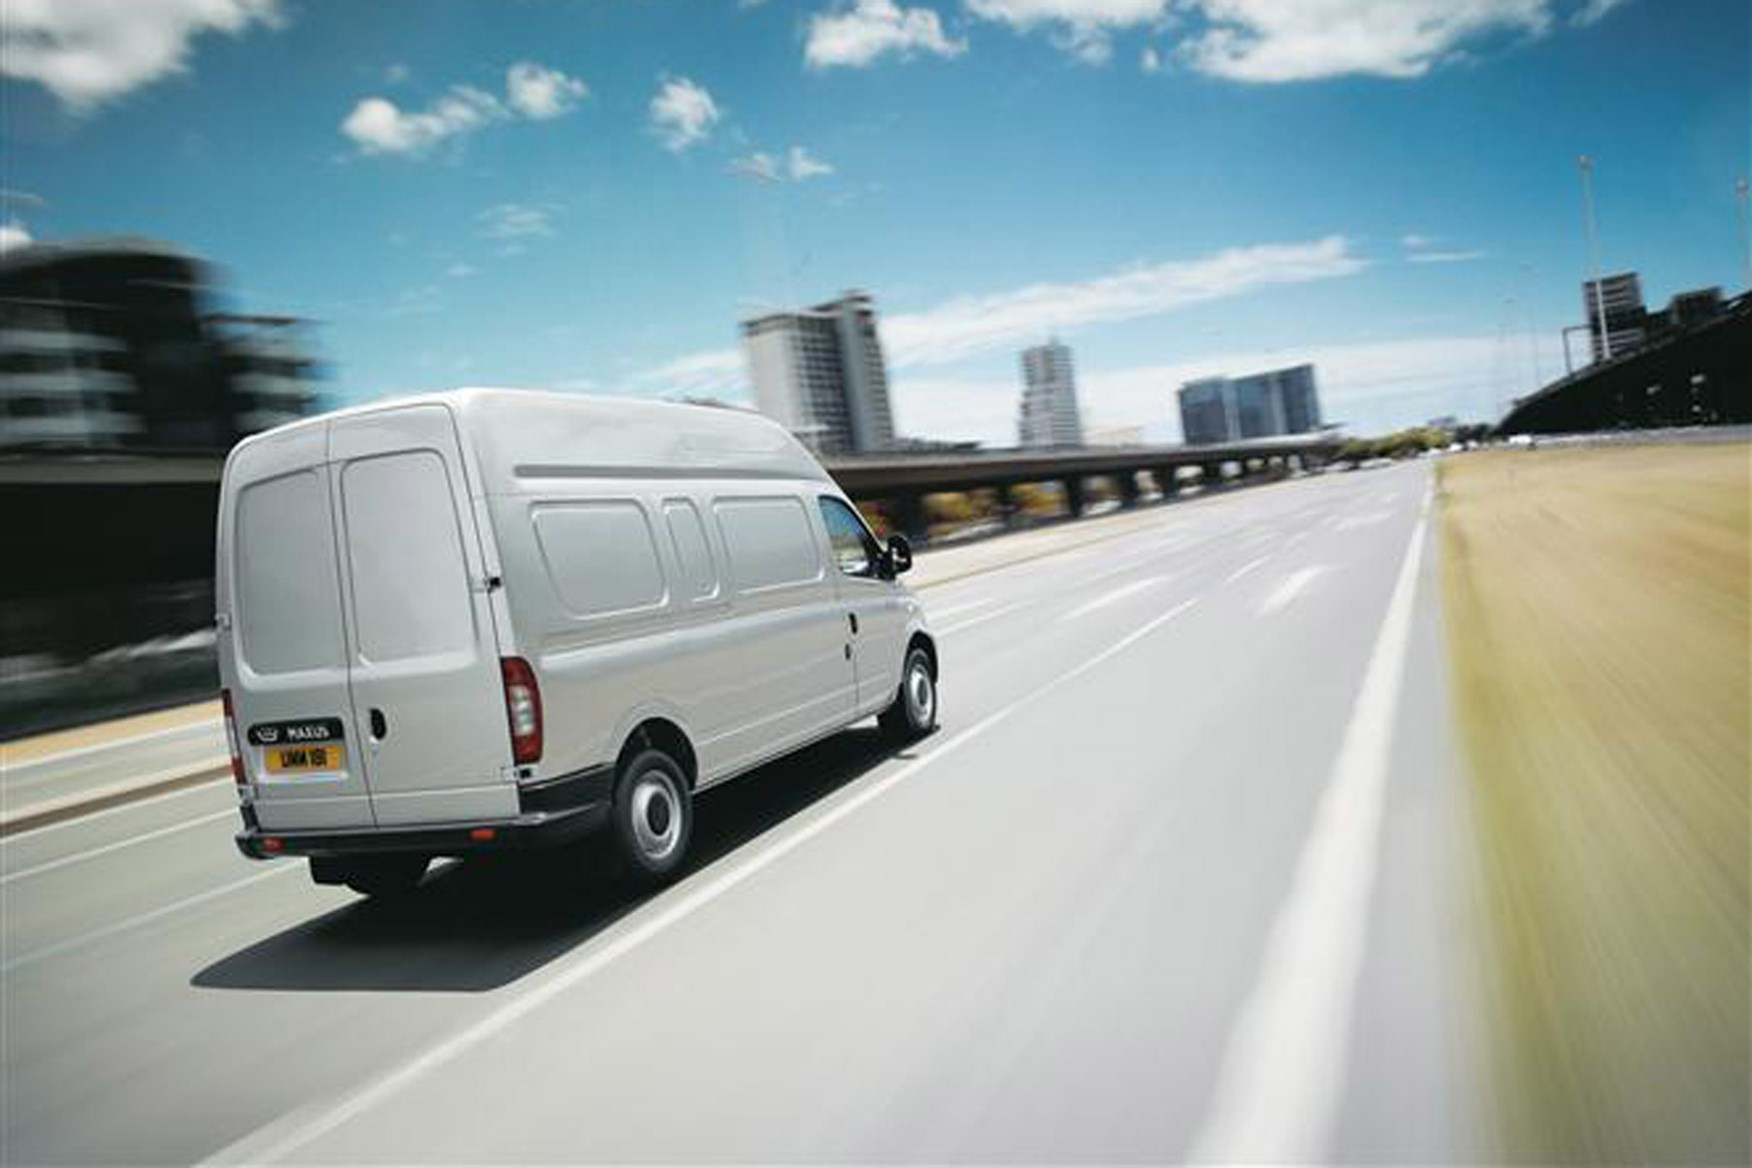 0a1643078e04d6 LDV Maxus review on Parkers Vans - on the road